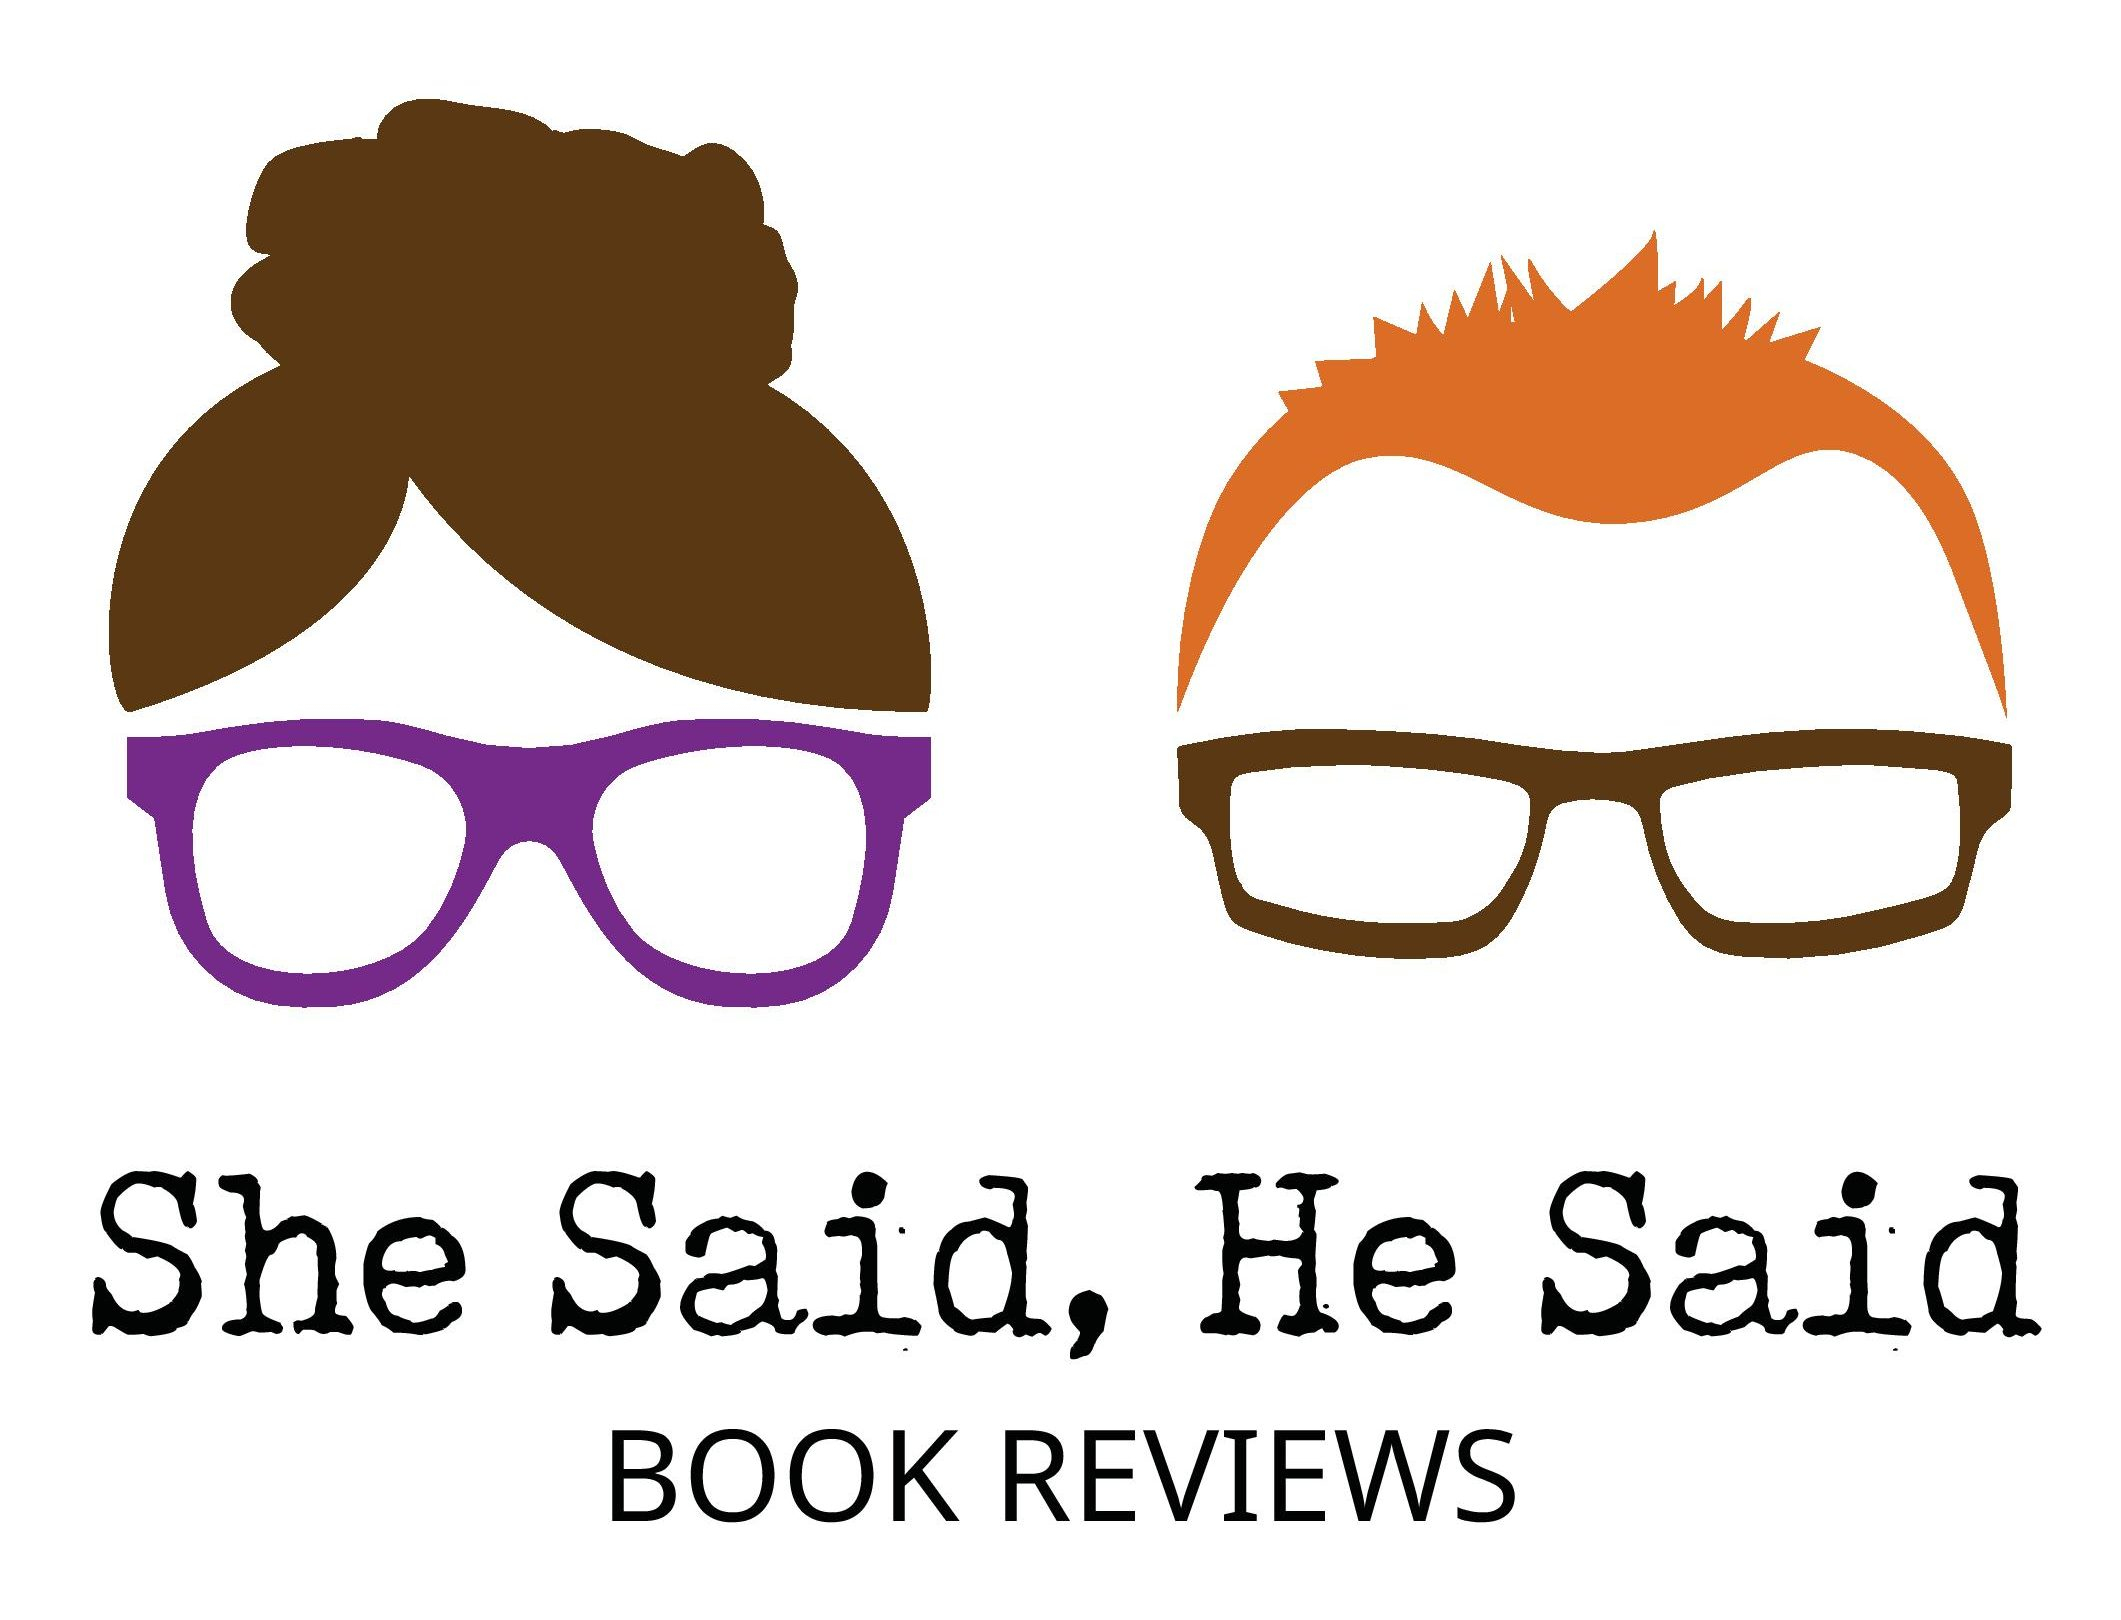 She Said, He Said Book Reviews